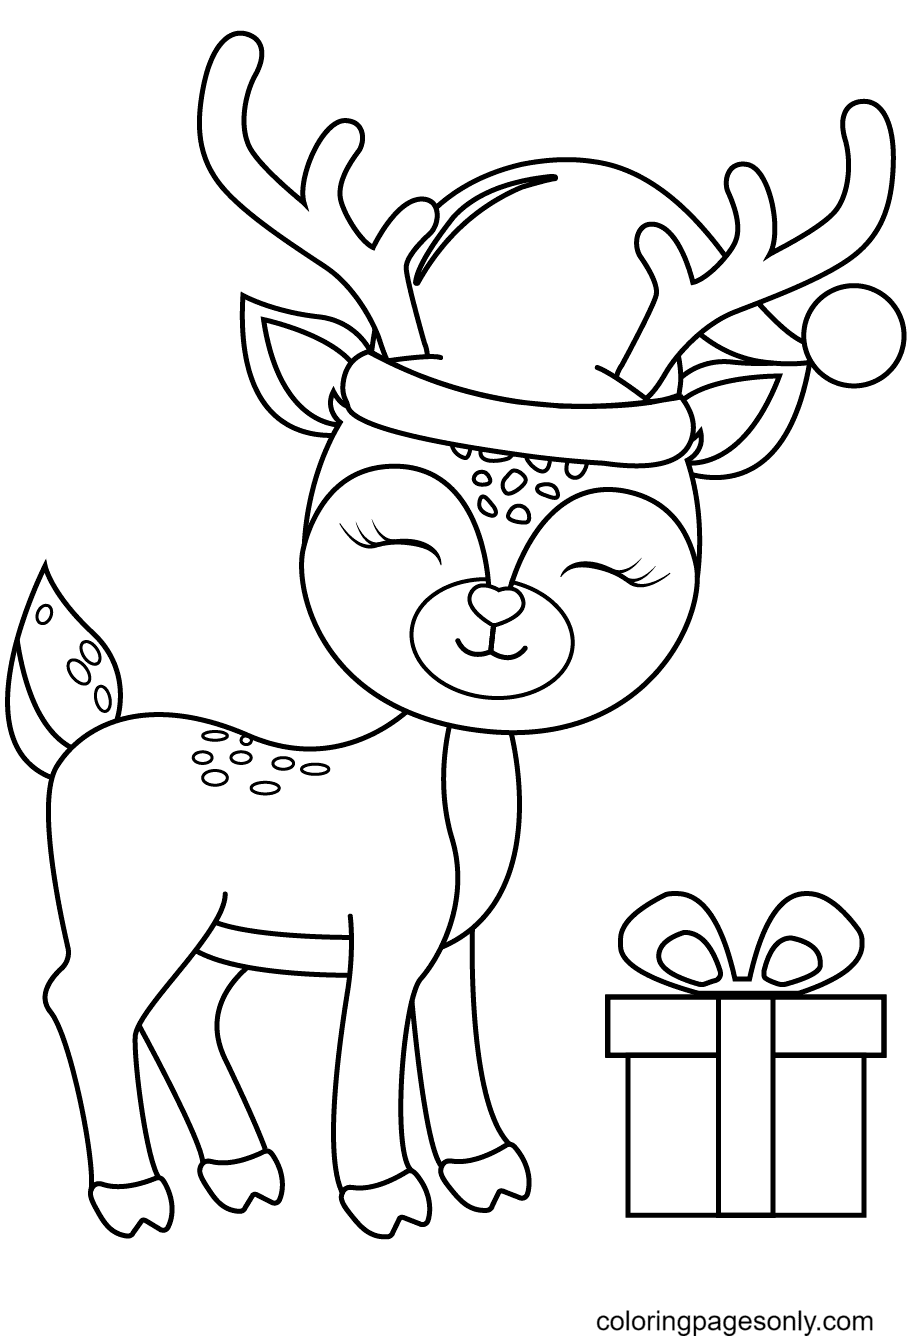 Christmas Reindeer With Gift Box Coloring Page